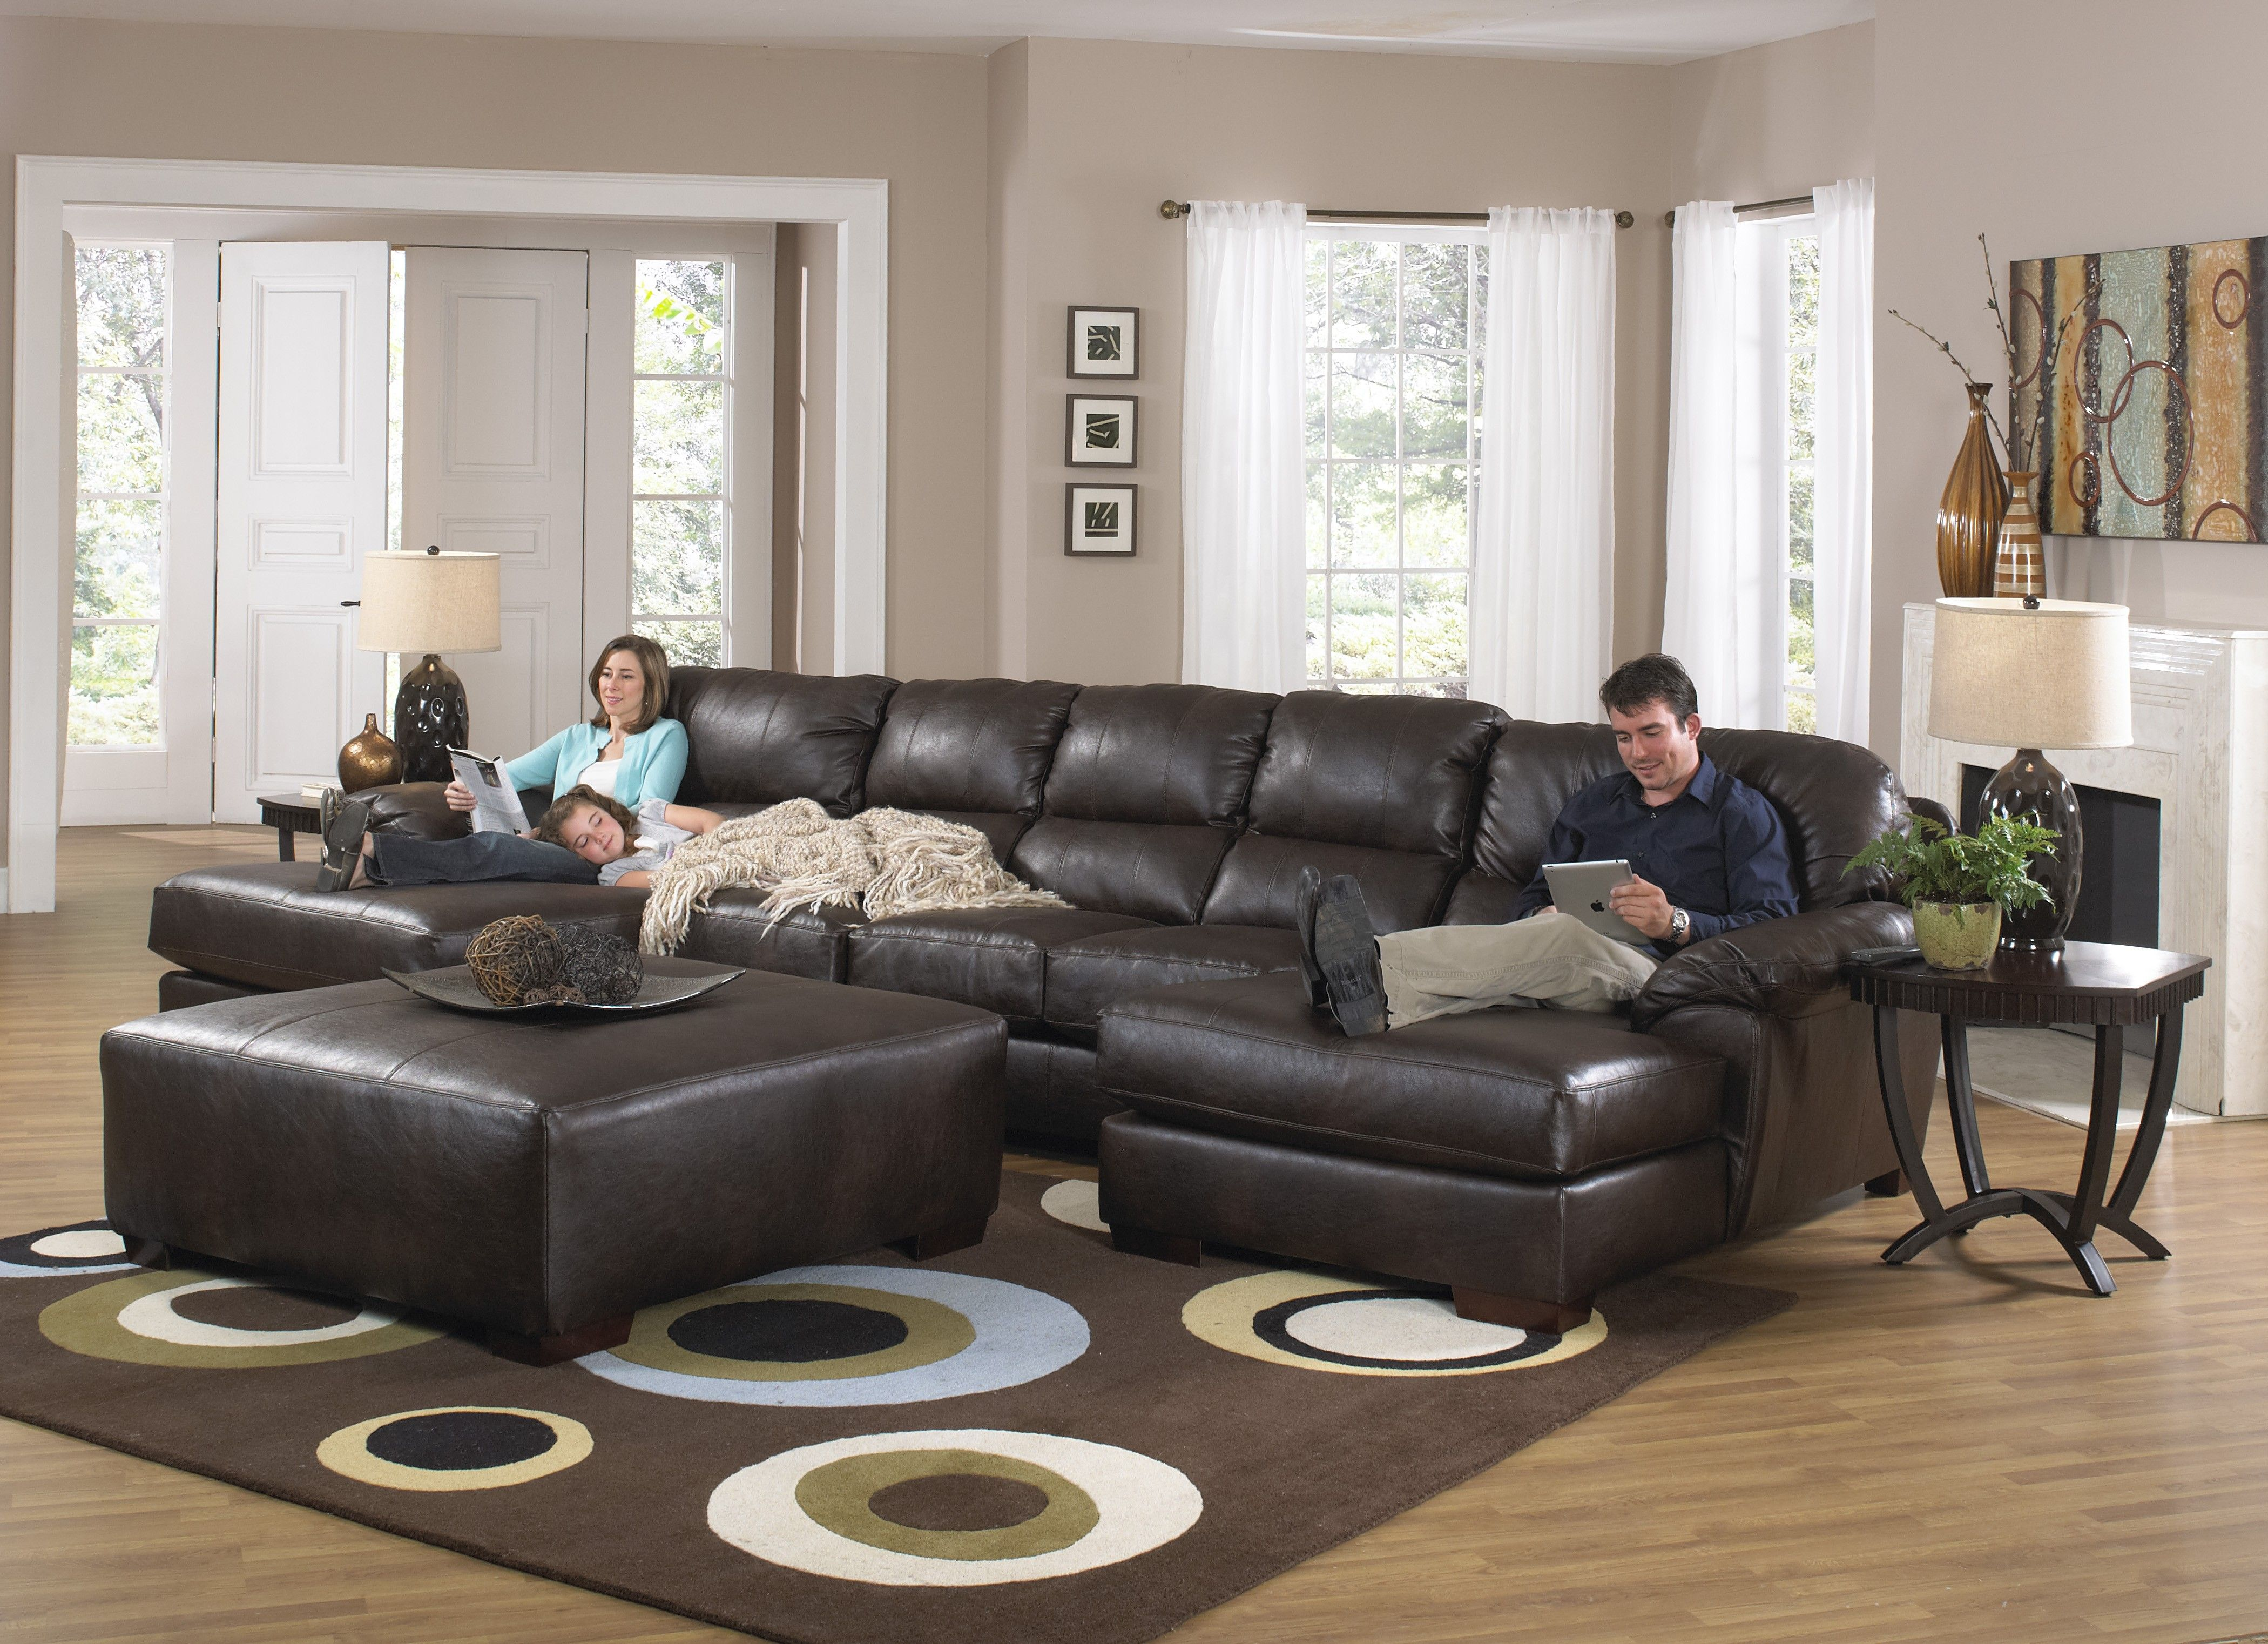 Awesome Sectional Sofa With Recliner And Chaise Lounge 81 About Remodel Small Home Decor Inspiration